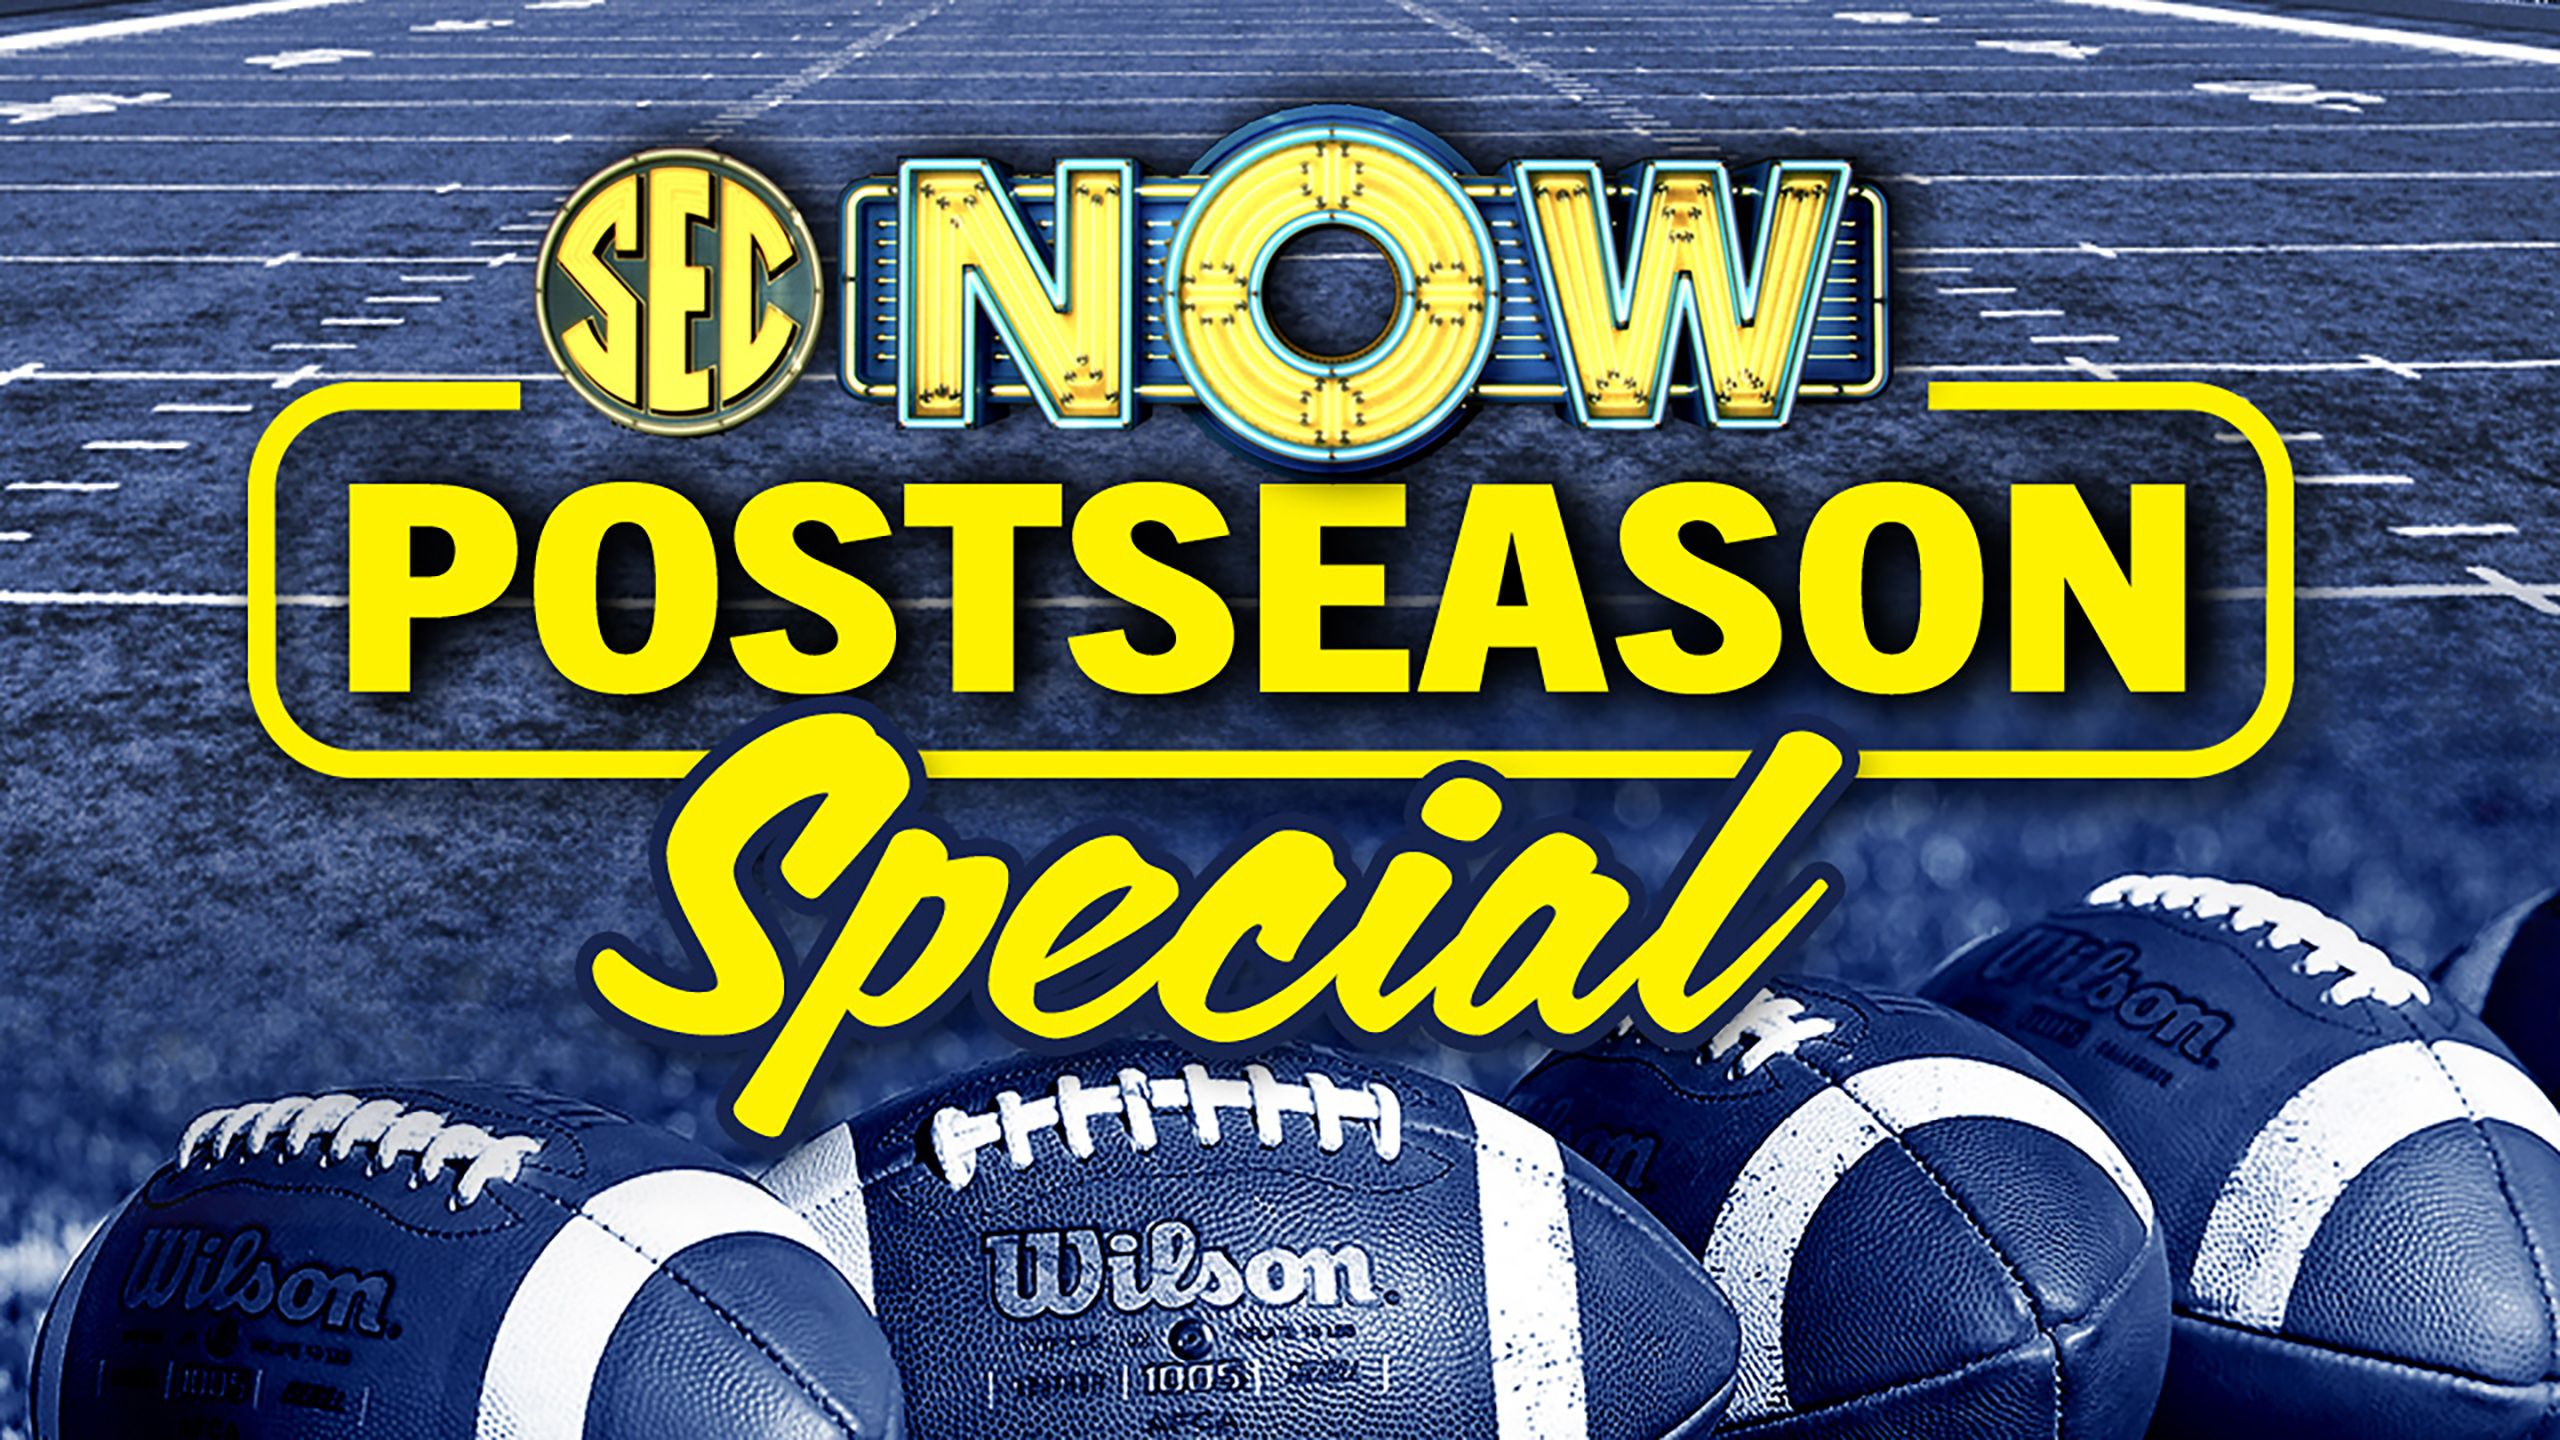 SEC Now: Postseason Preview